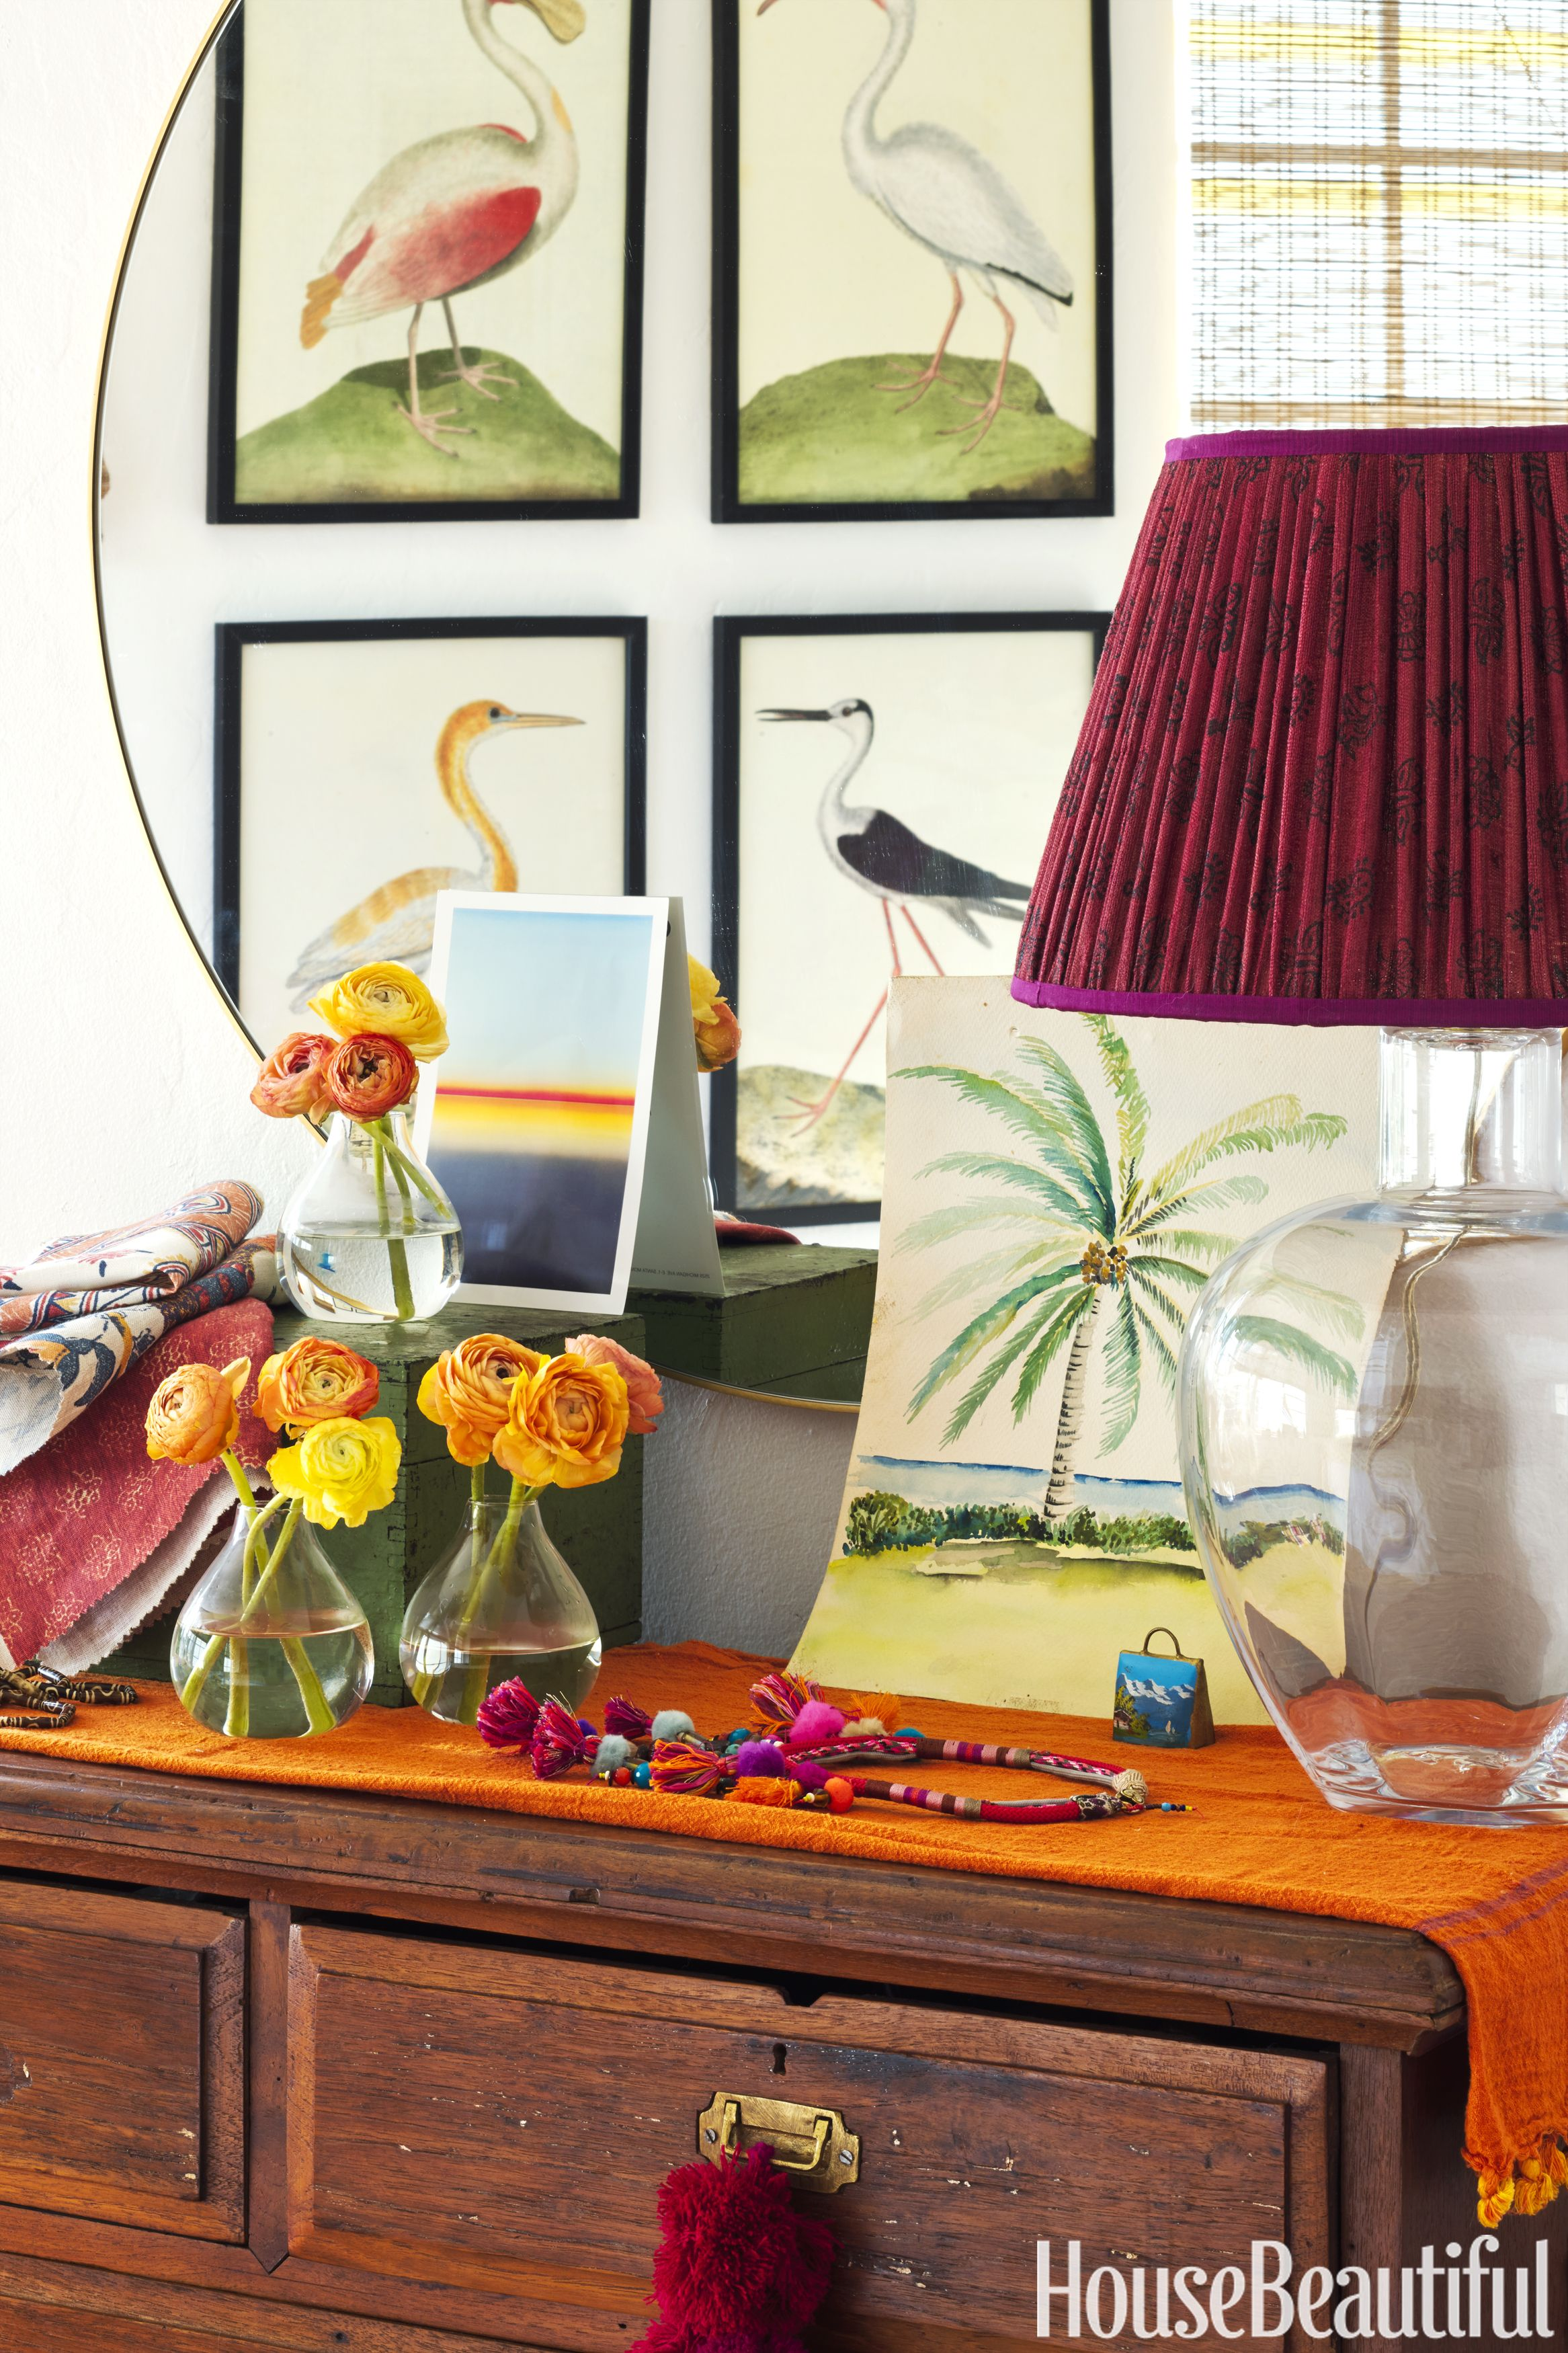 Boho apartment in miami beach schuyler sampertons colorful style